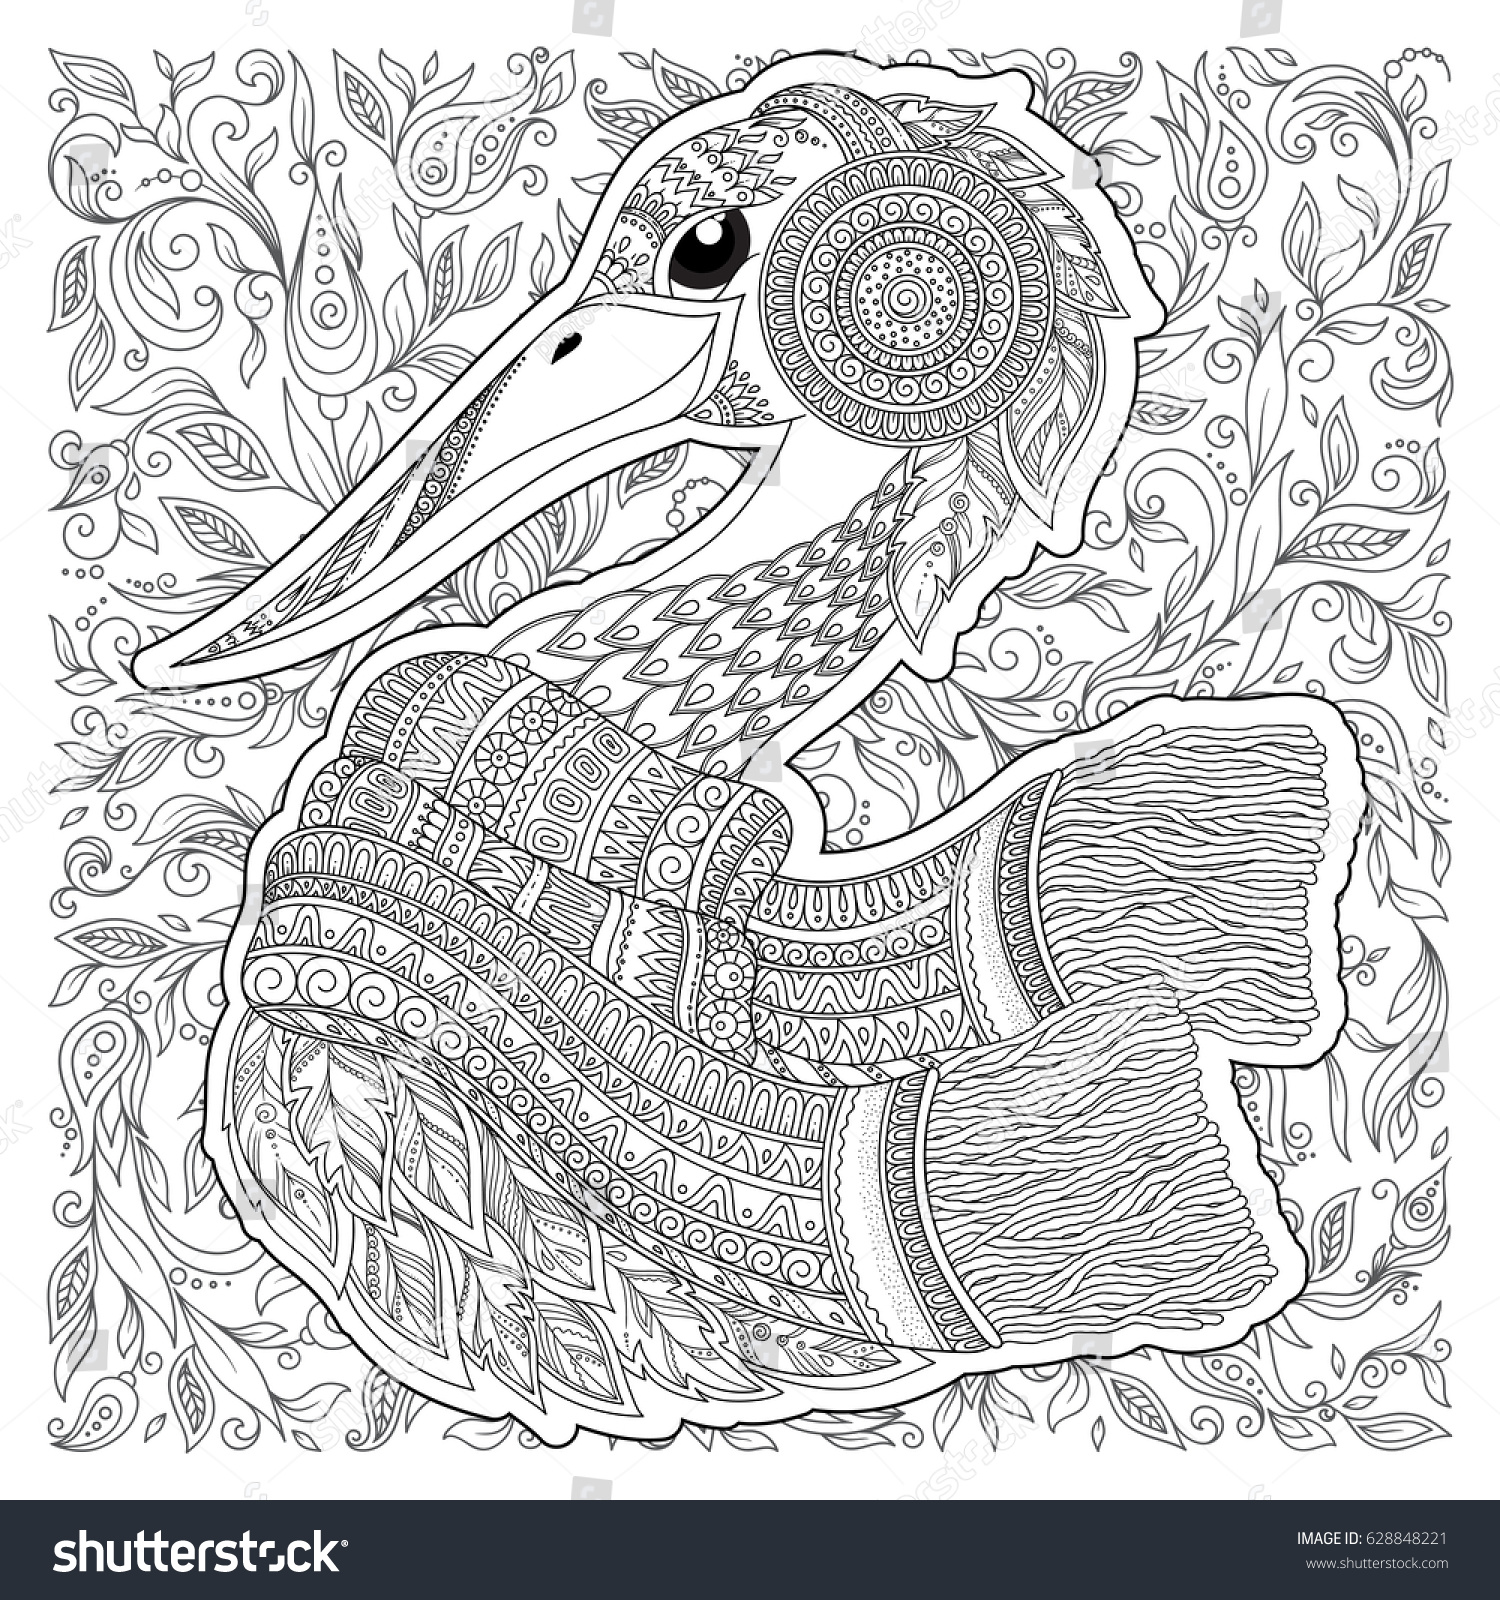 Zentangle Hand Drawn Stork Adult Anti Stock Vector